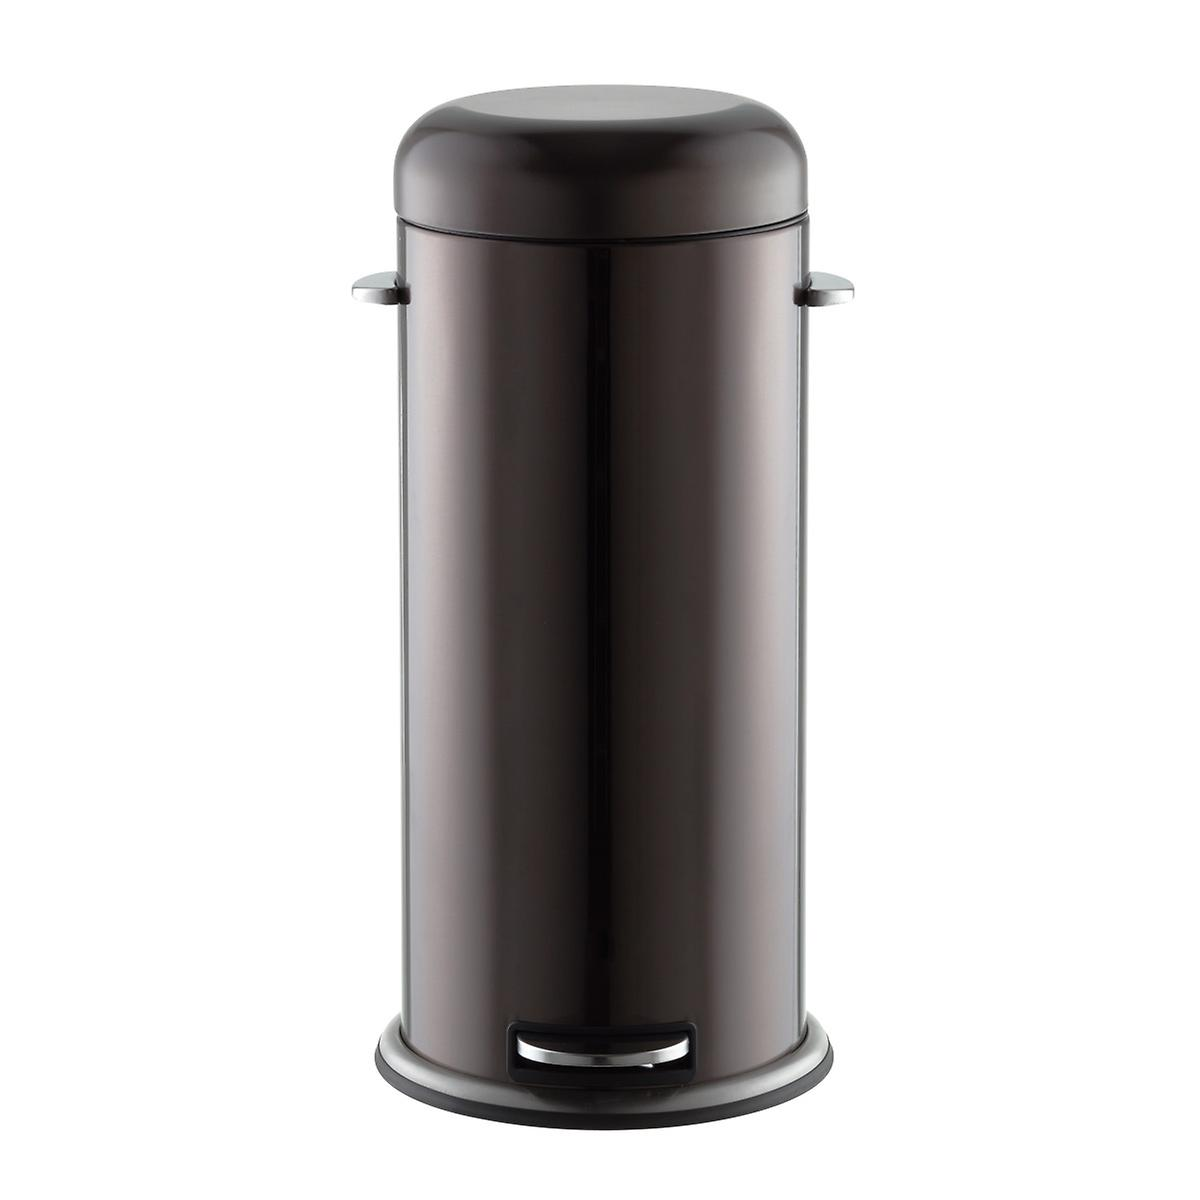 Black Stainless Steel 8 gal. Retro Trash Can